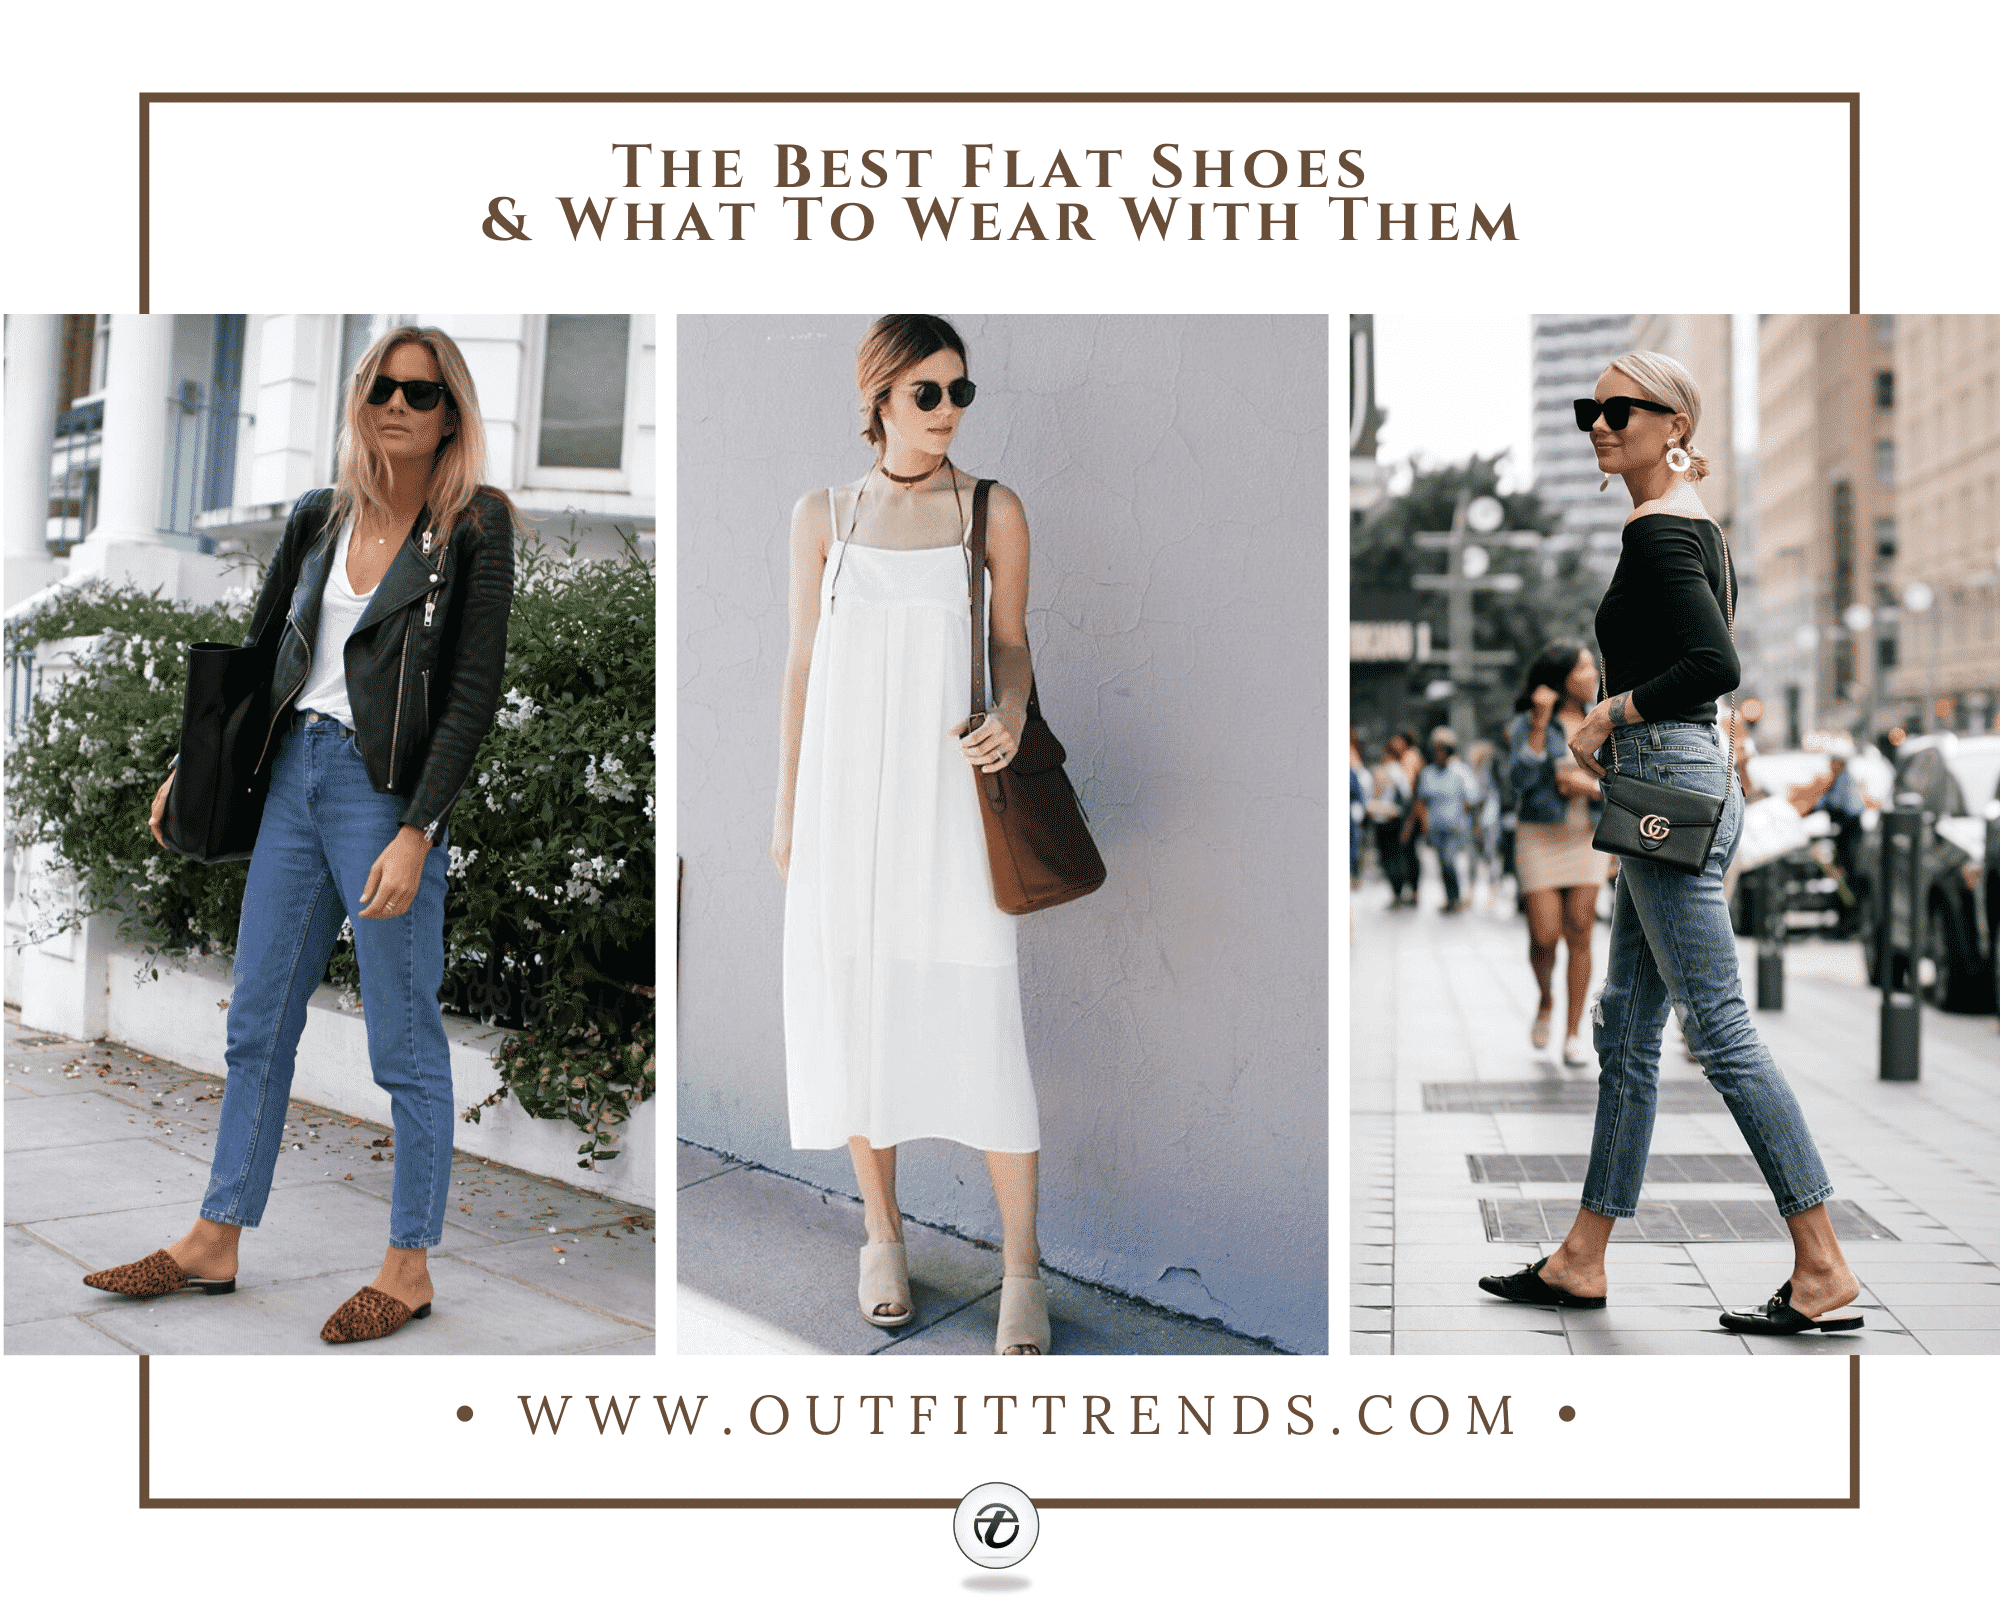 28 Types Of Summer Flat Shoes & Outfits To Wear With Flats